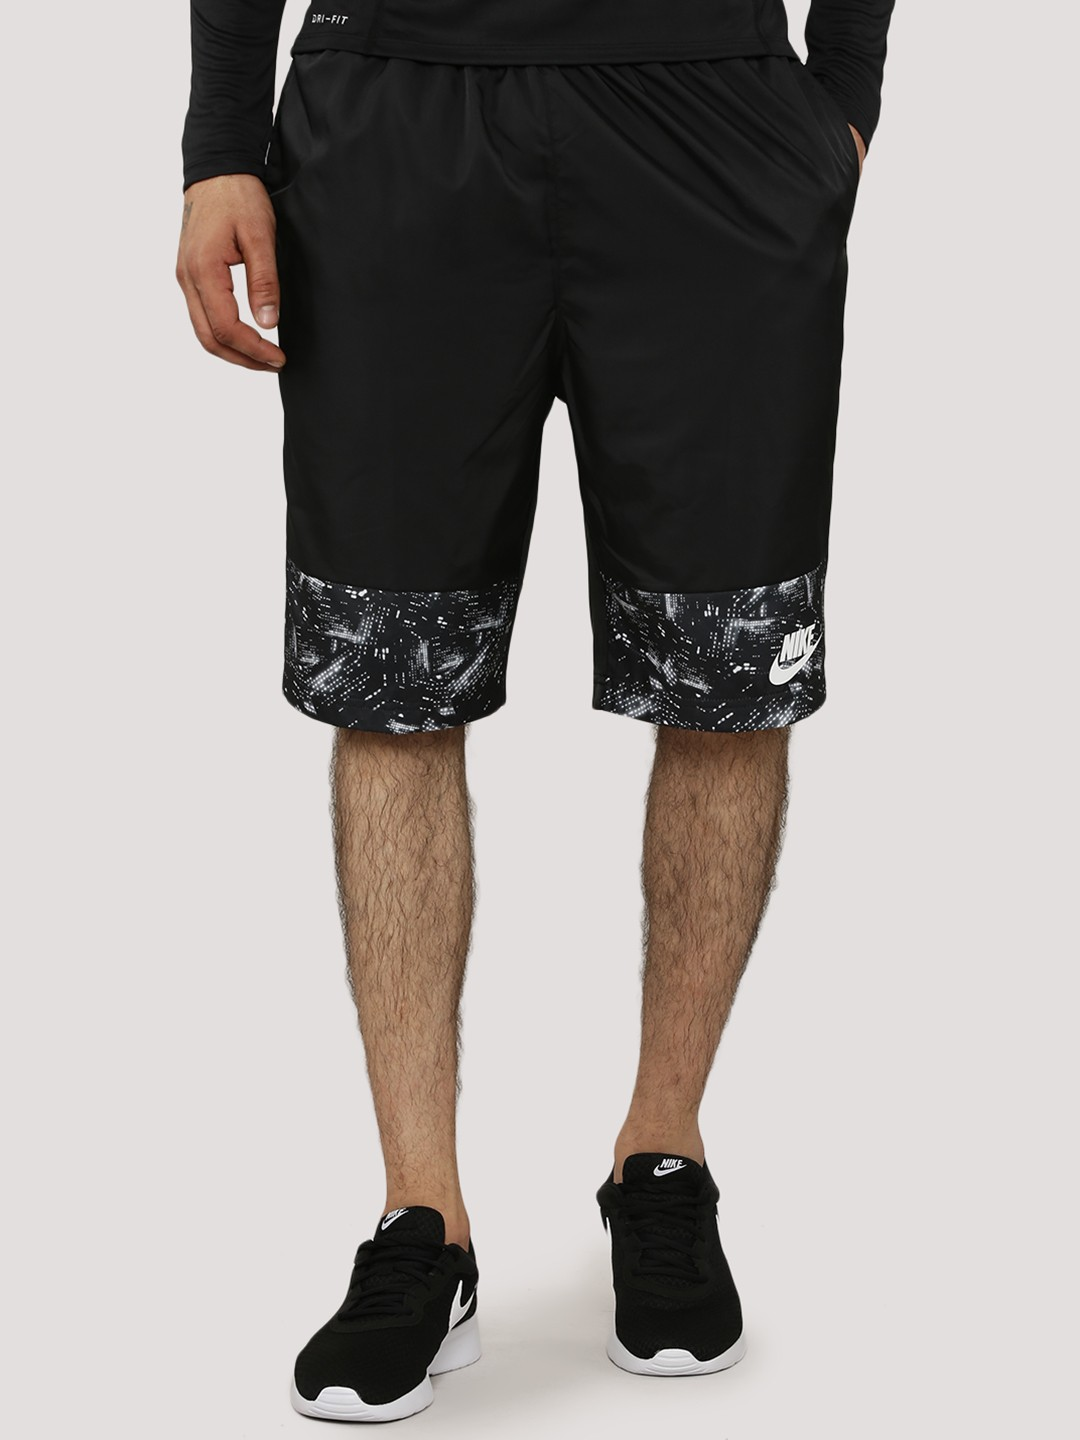 NIKE Printed Panel Woven Shorts With Mesh Lining